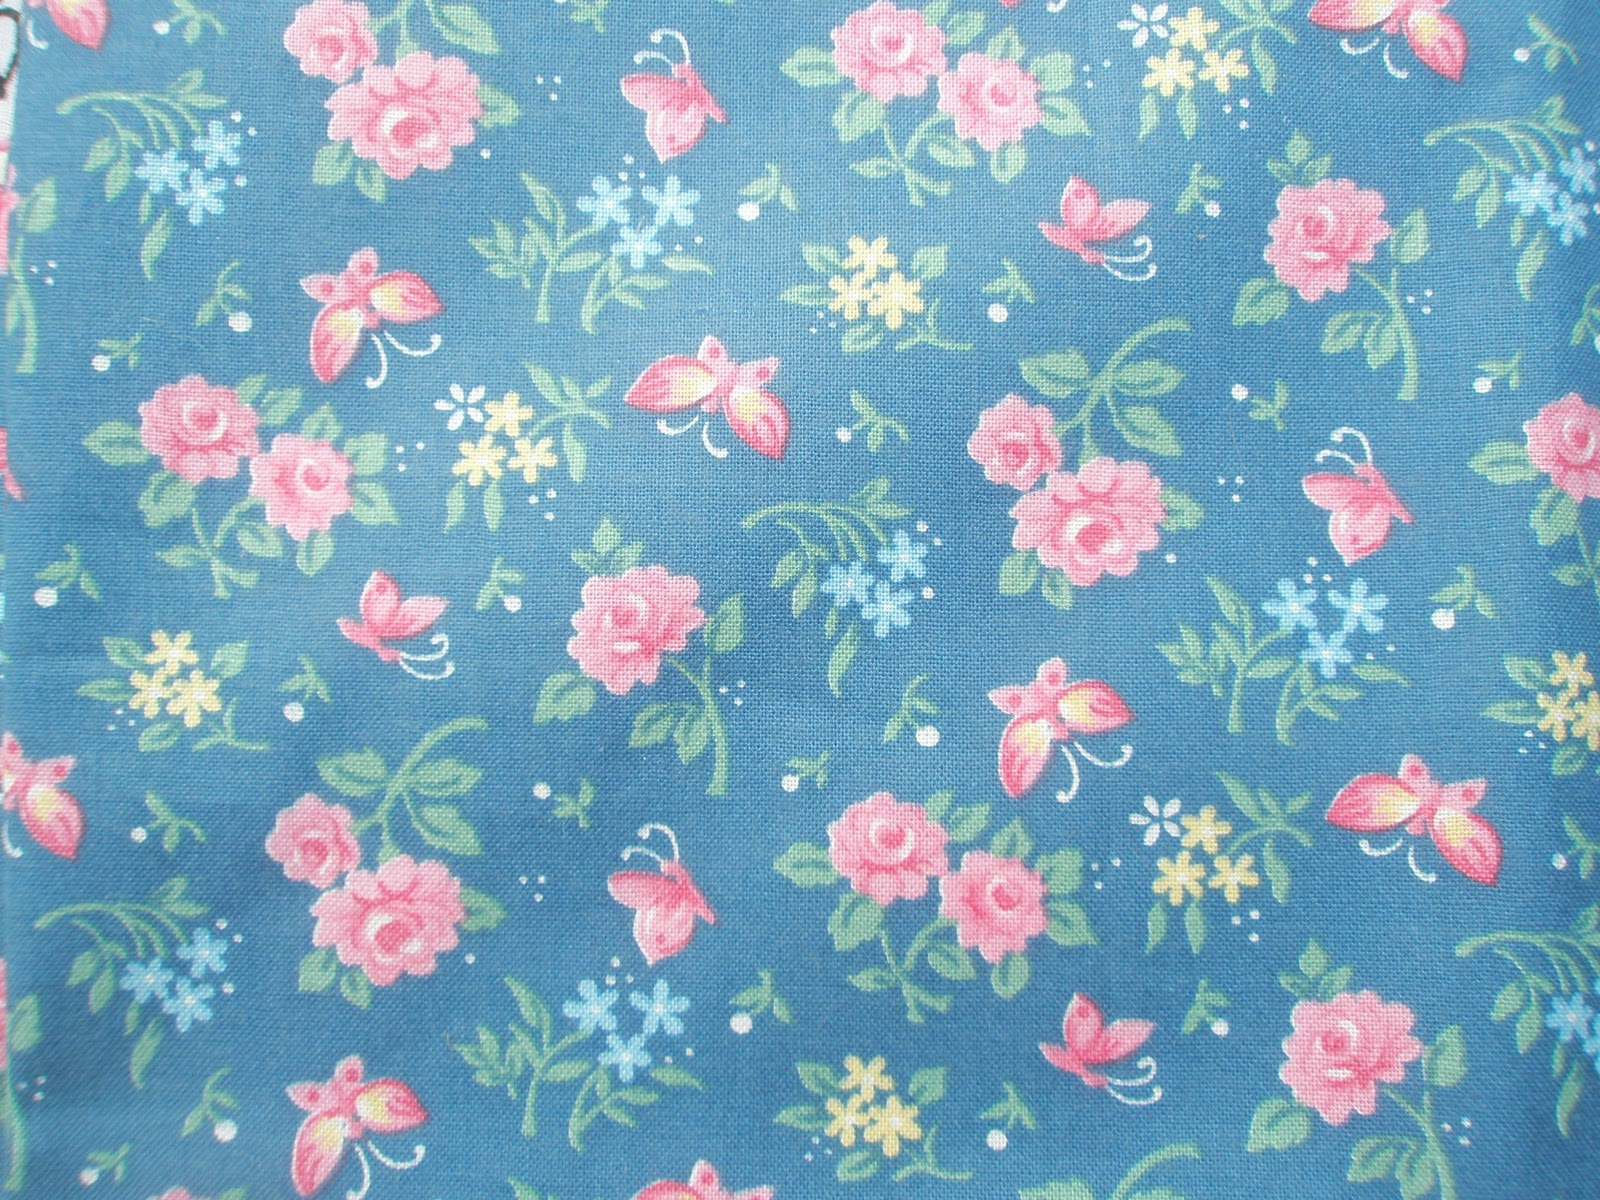 Hwfd Girly Flower Backgrounds Tumblr Picture Wallpaper 1600 X